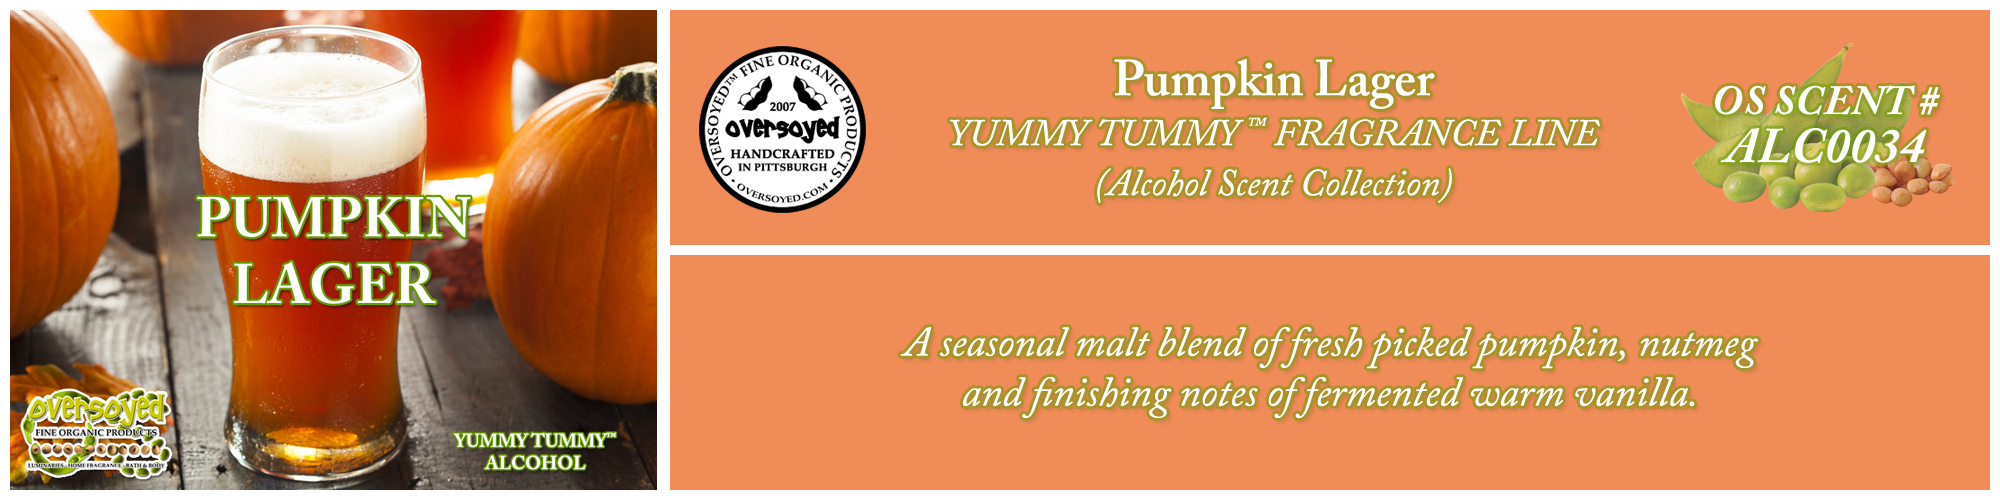 Pumpkin Lager Handcrafted Products Collection